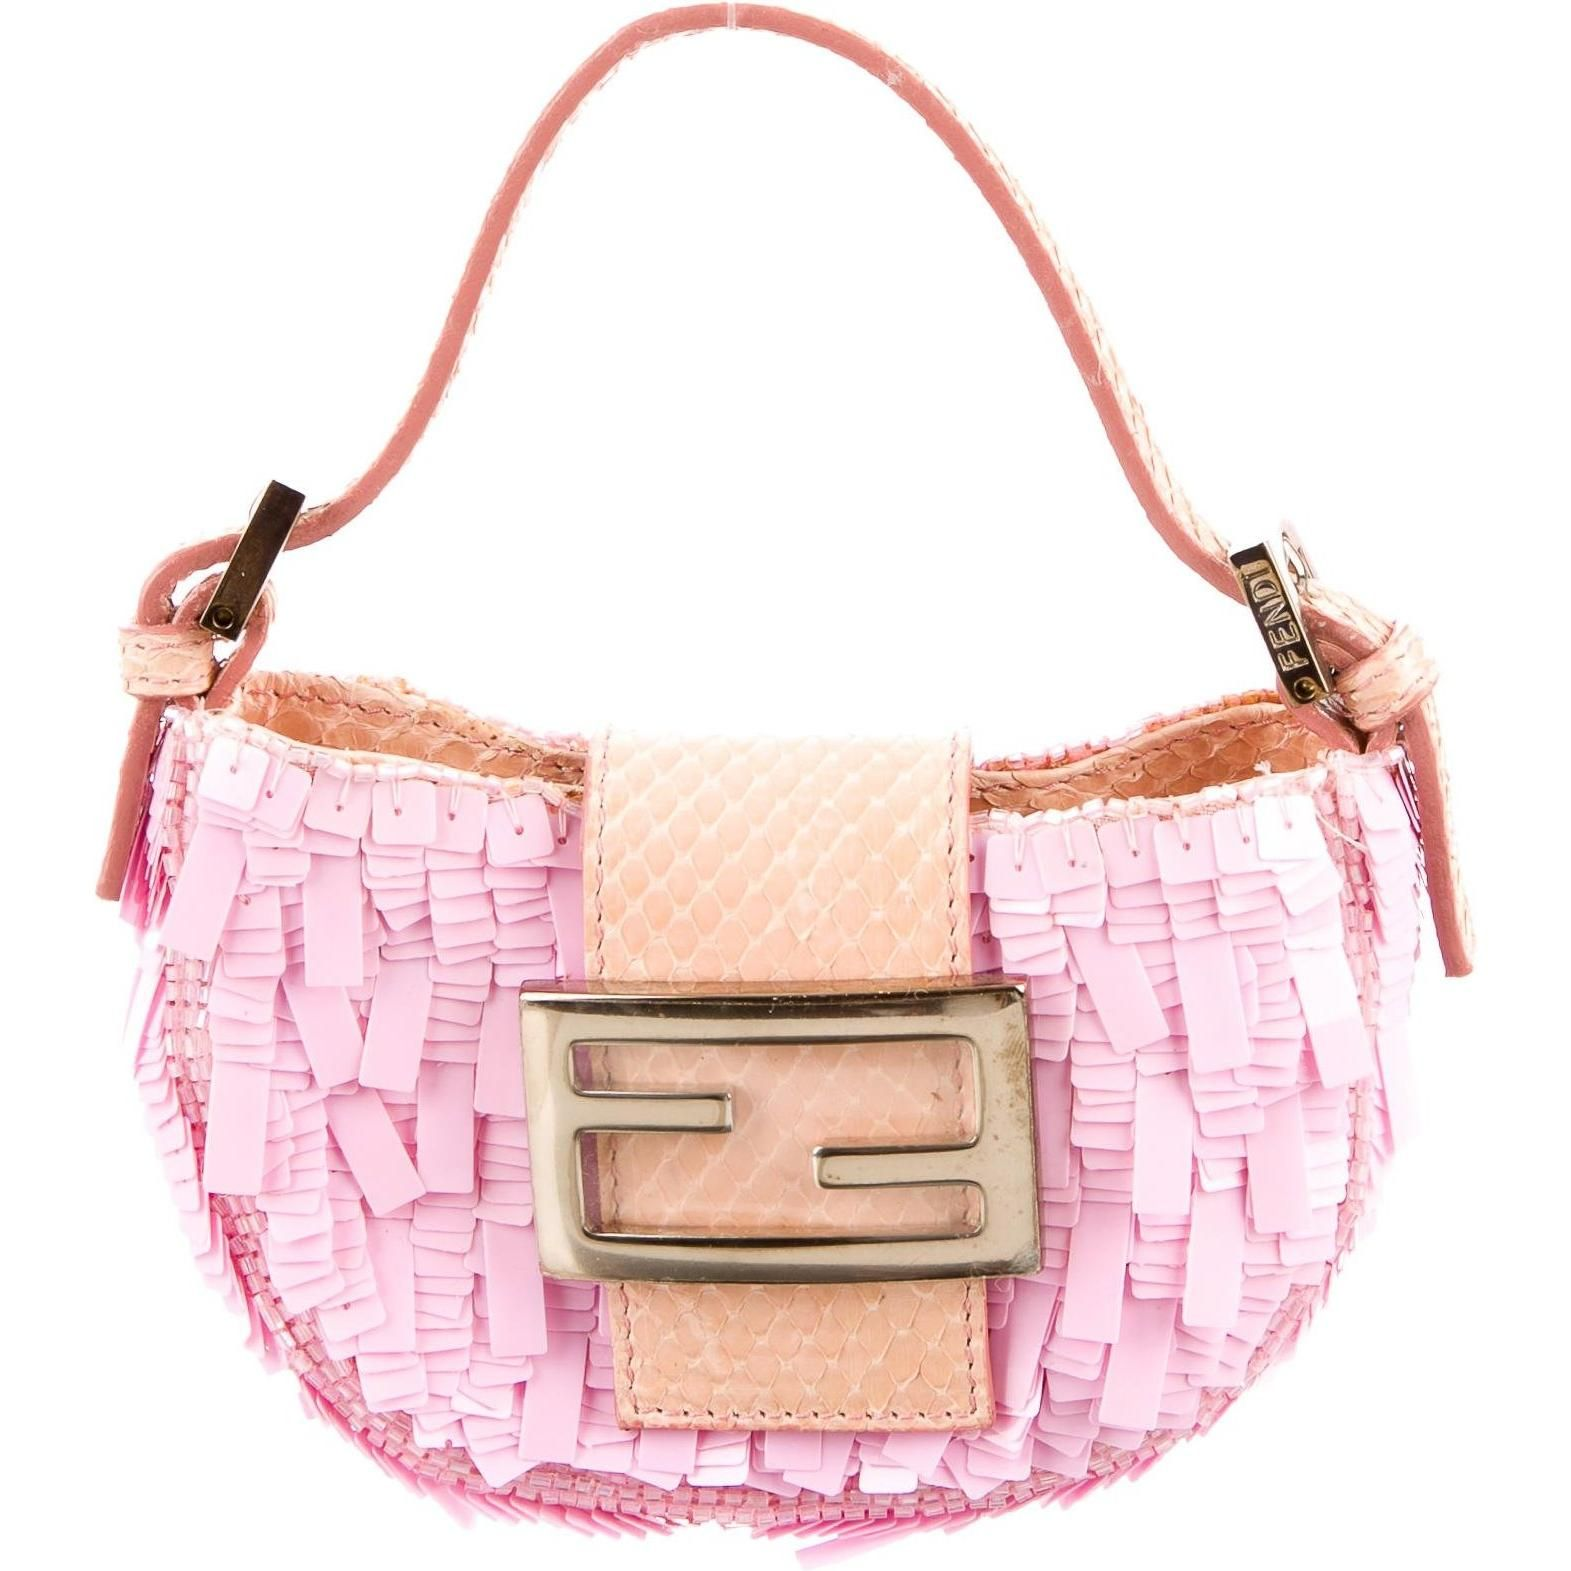 6590a08038bf Fendi Mini Croissant Bag as seen on Kourtney Kardashian